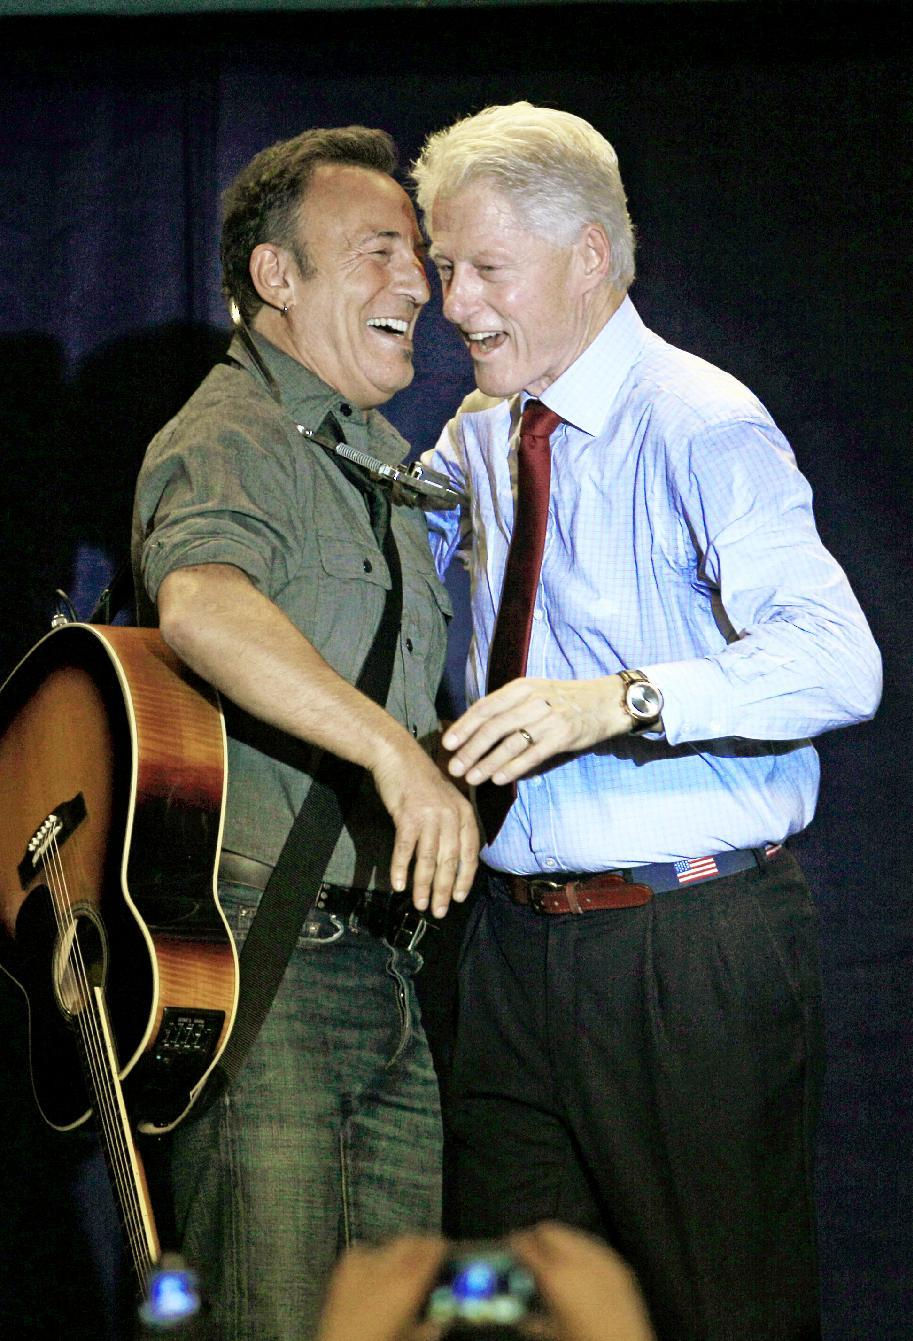 Former President Bill Clinton, right, laughs with singer/songwriter Bruce Springsteen during a campaign event for President Barack Obama, Thursday, Oct. 18, 2012, in Parma, Ohio. (AP Photo/Tony Dejak)